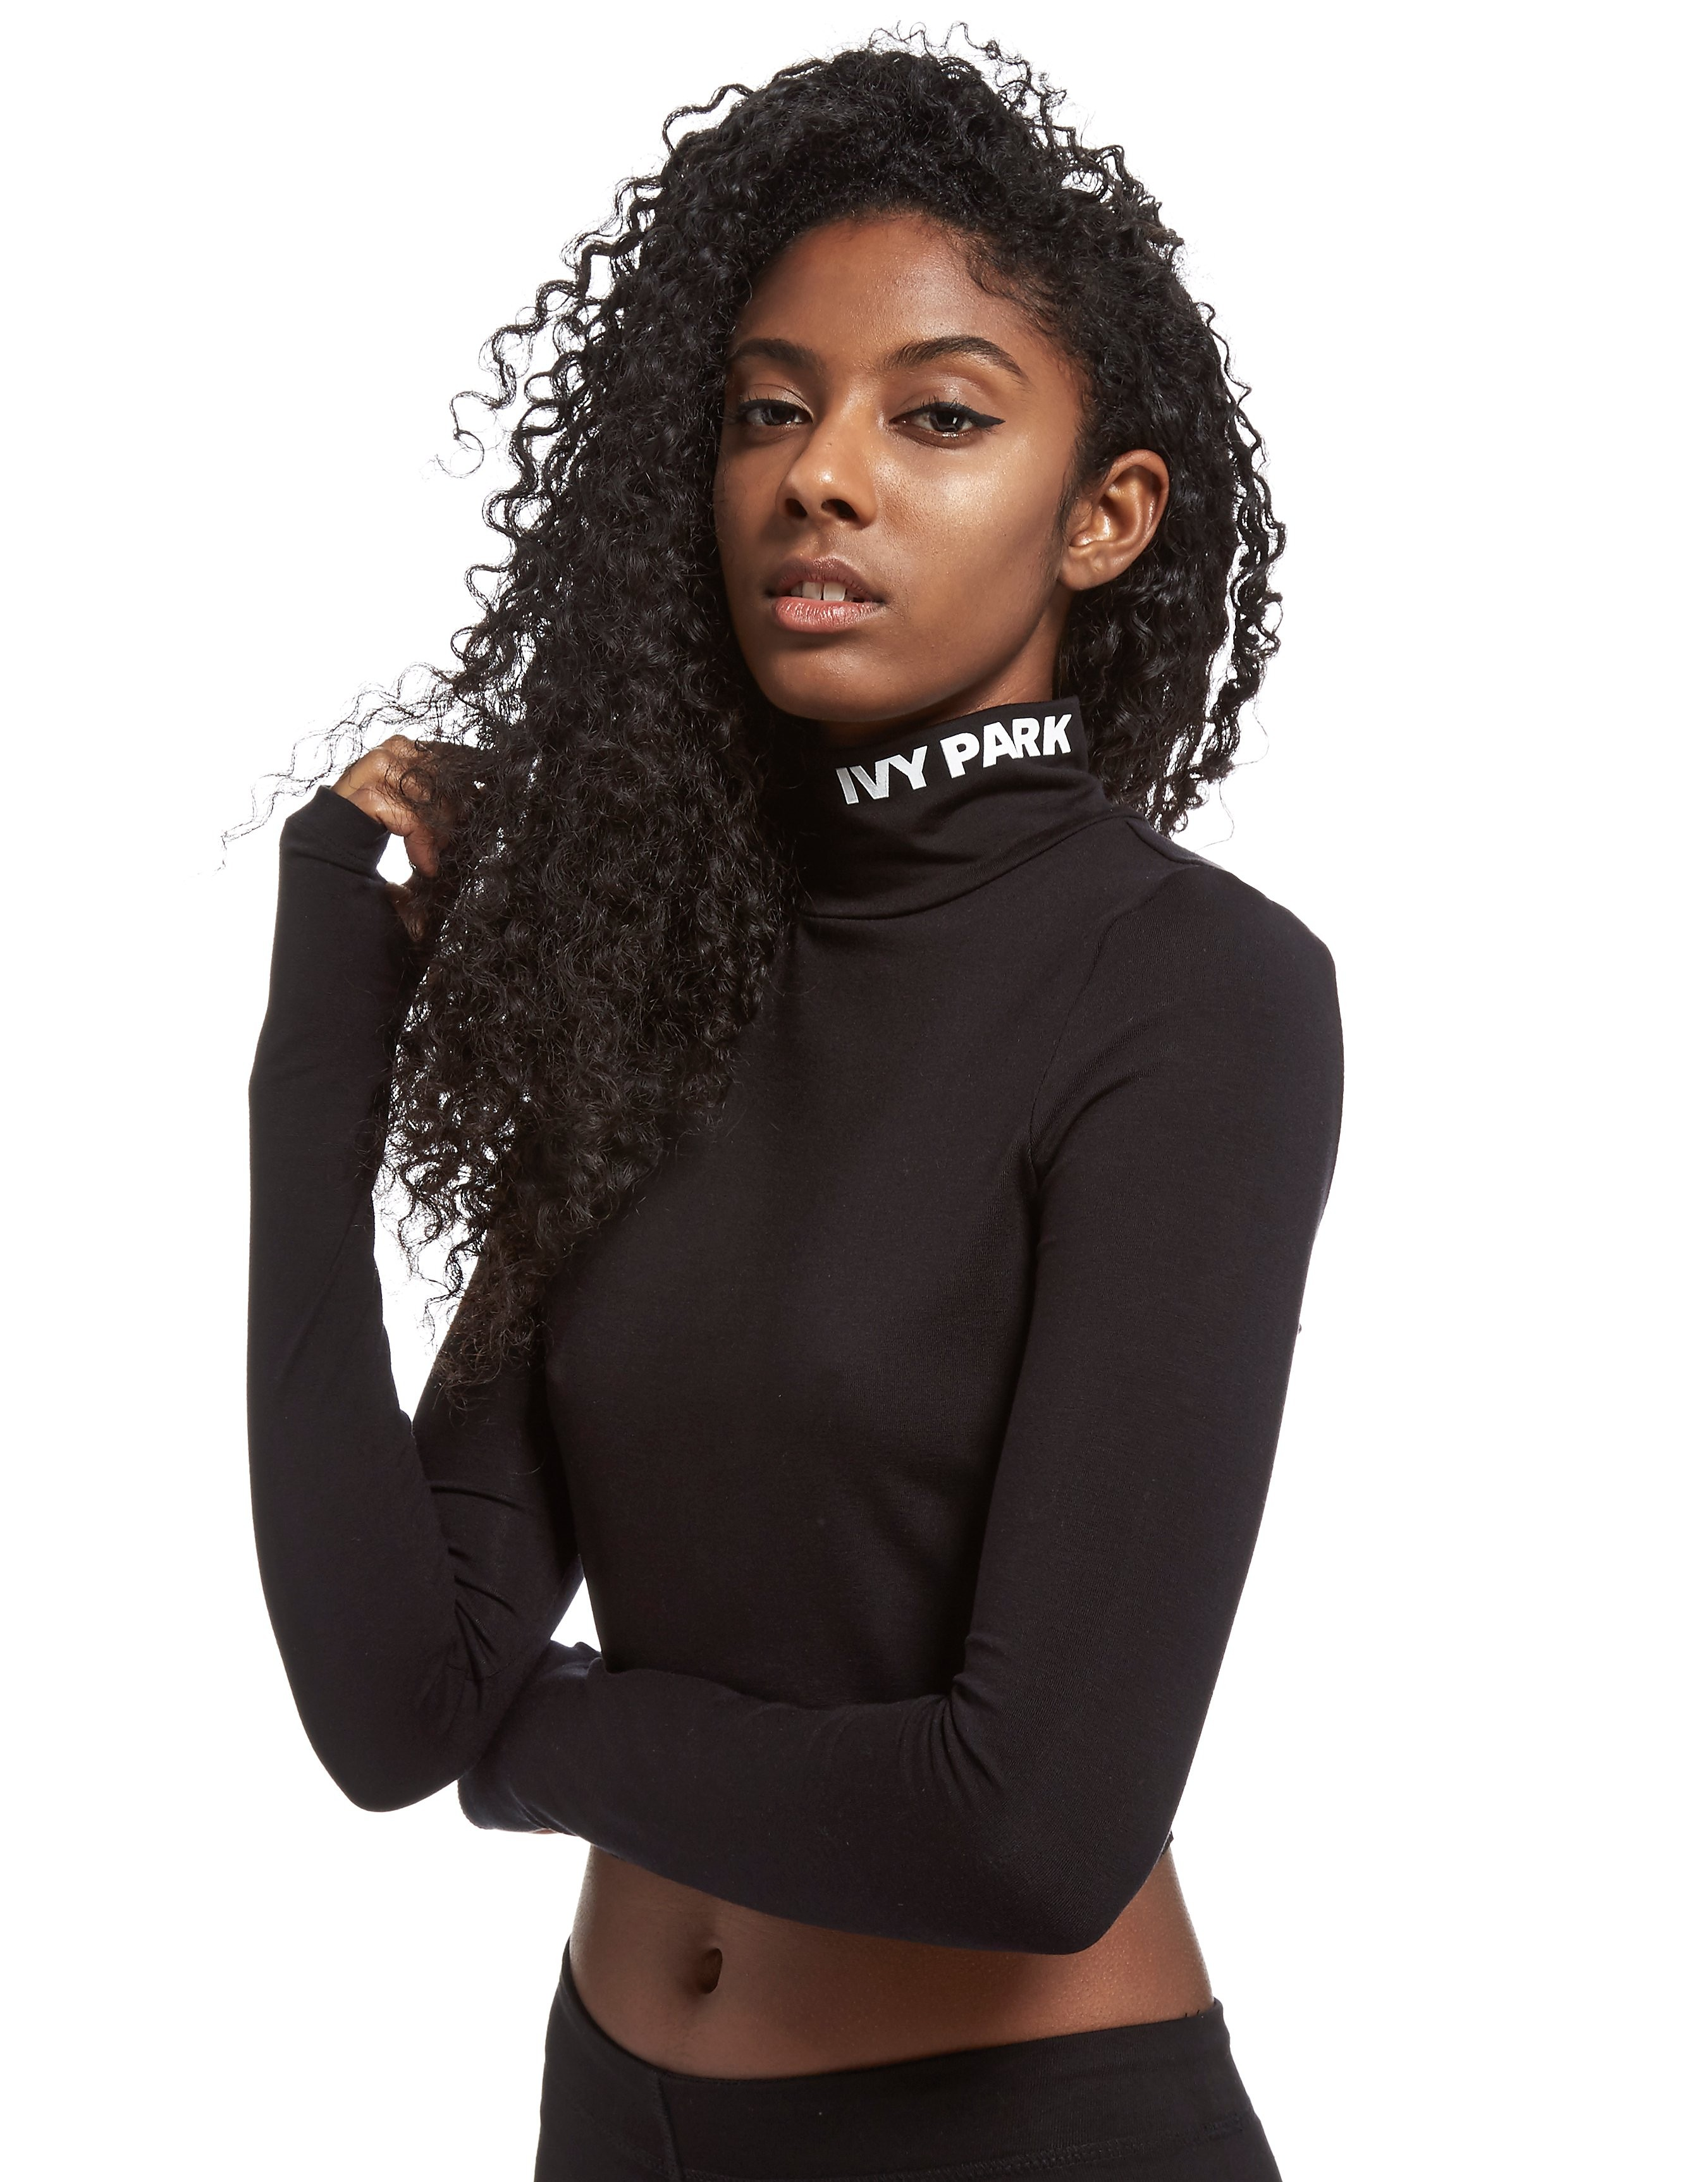 IVY PARK High Neck Crop Top